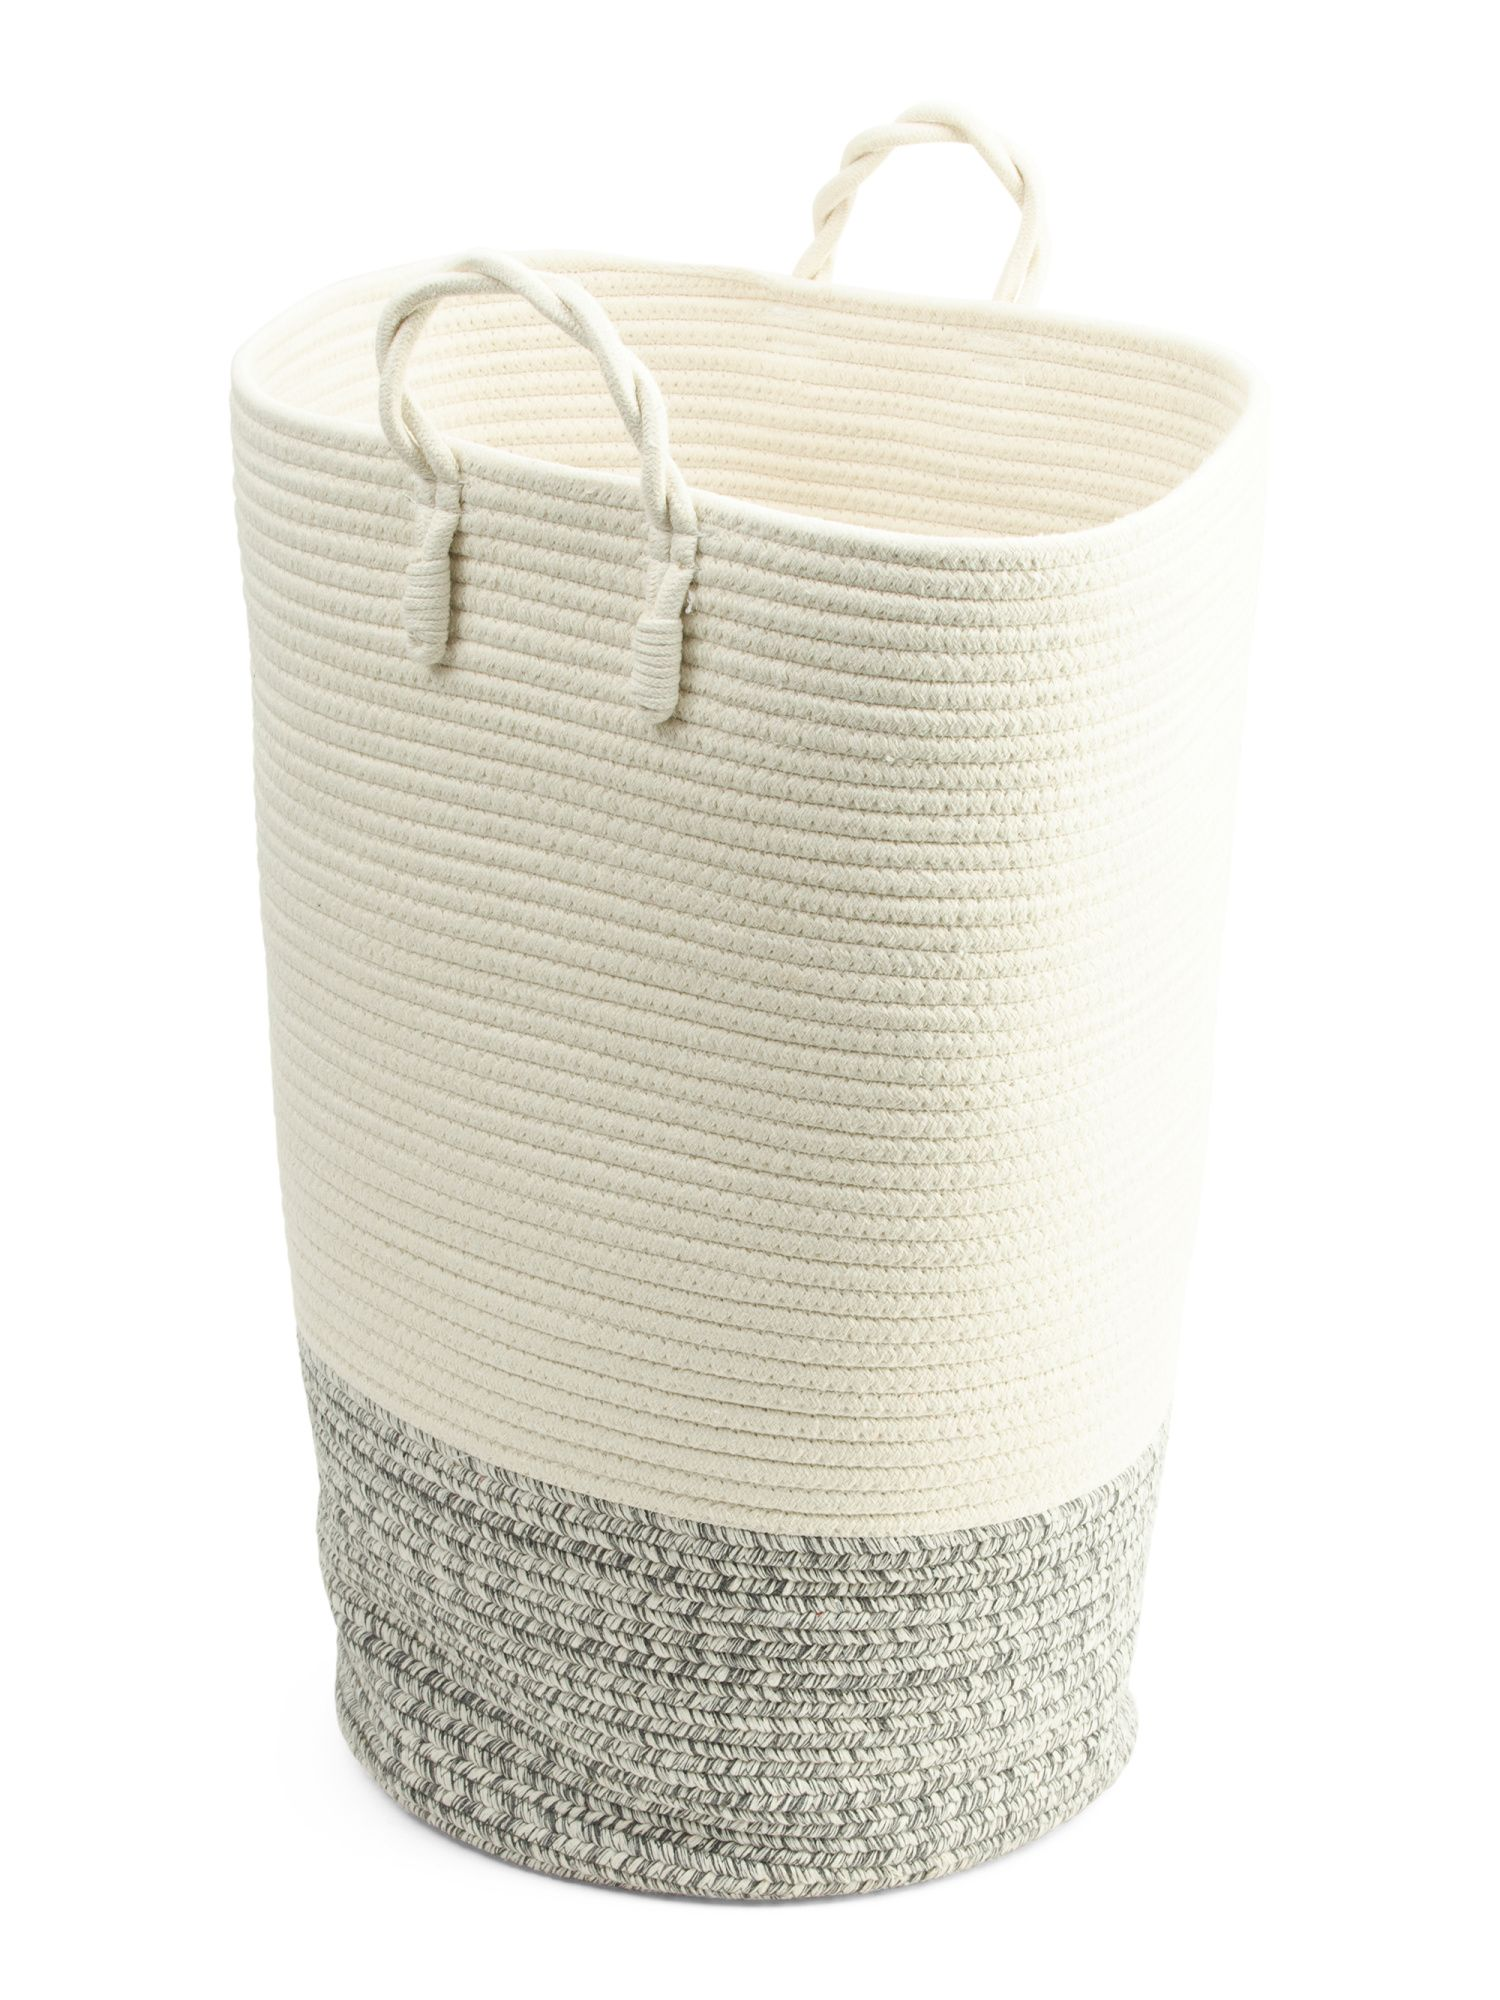 High Resolution Image Storage Baskets Bedroom Woven Laundry